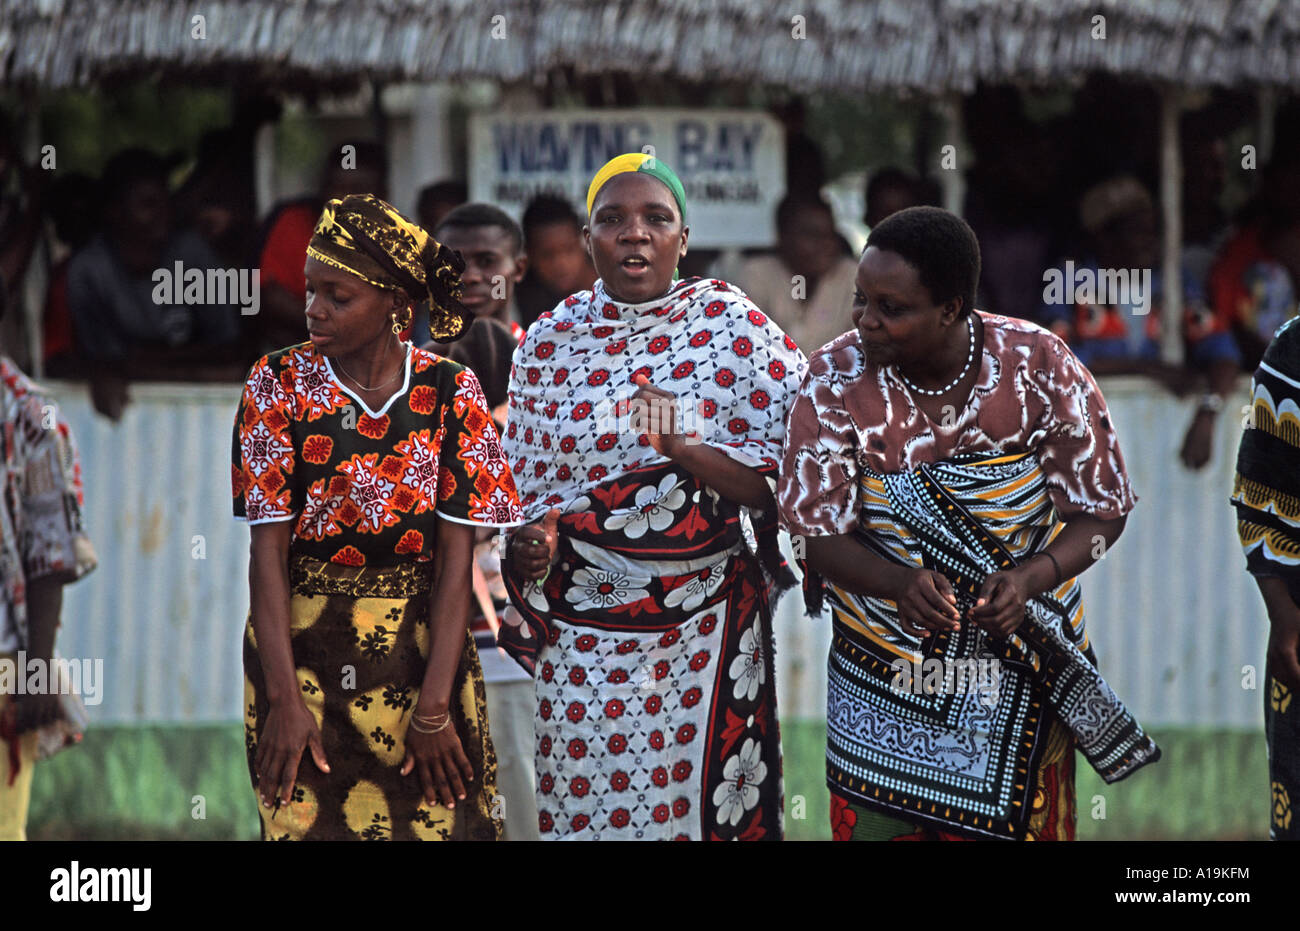 Group of women greeting a VIP arrival at Kilindoni arport Mafia island Dancing clapping and singing in celebration - Stock Image